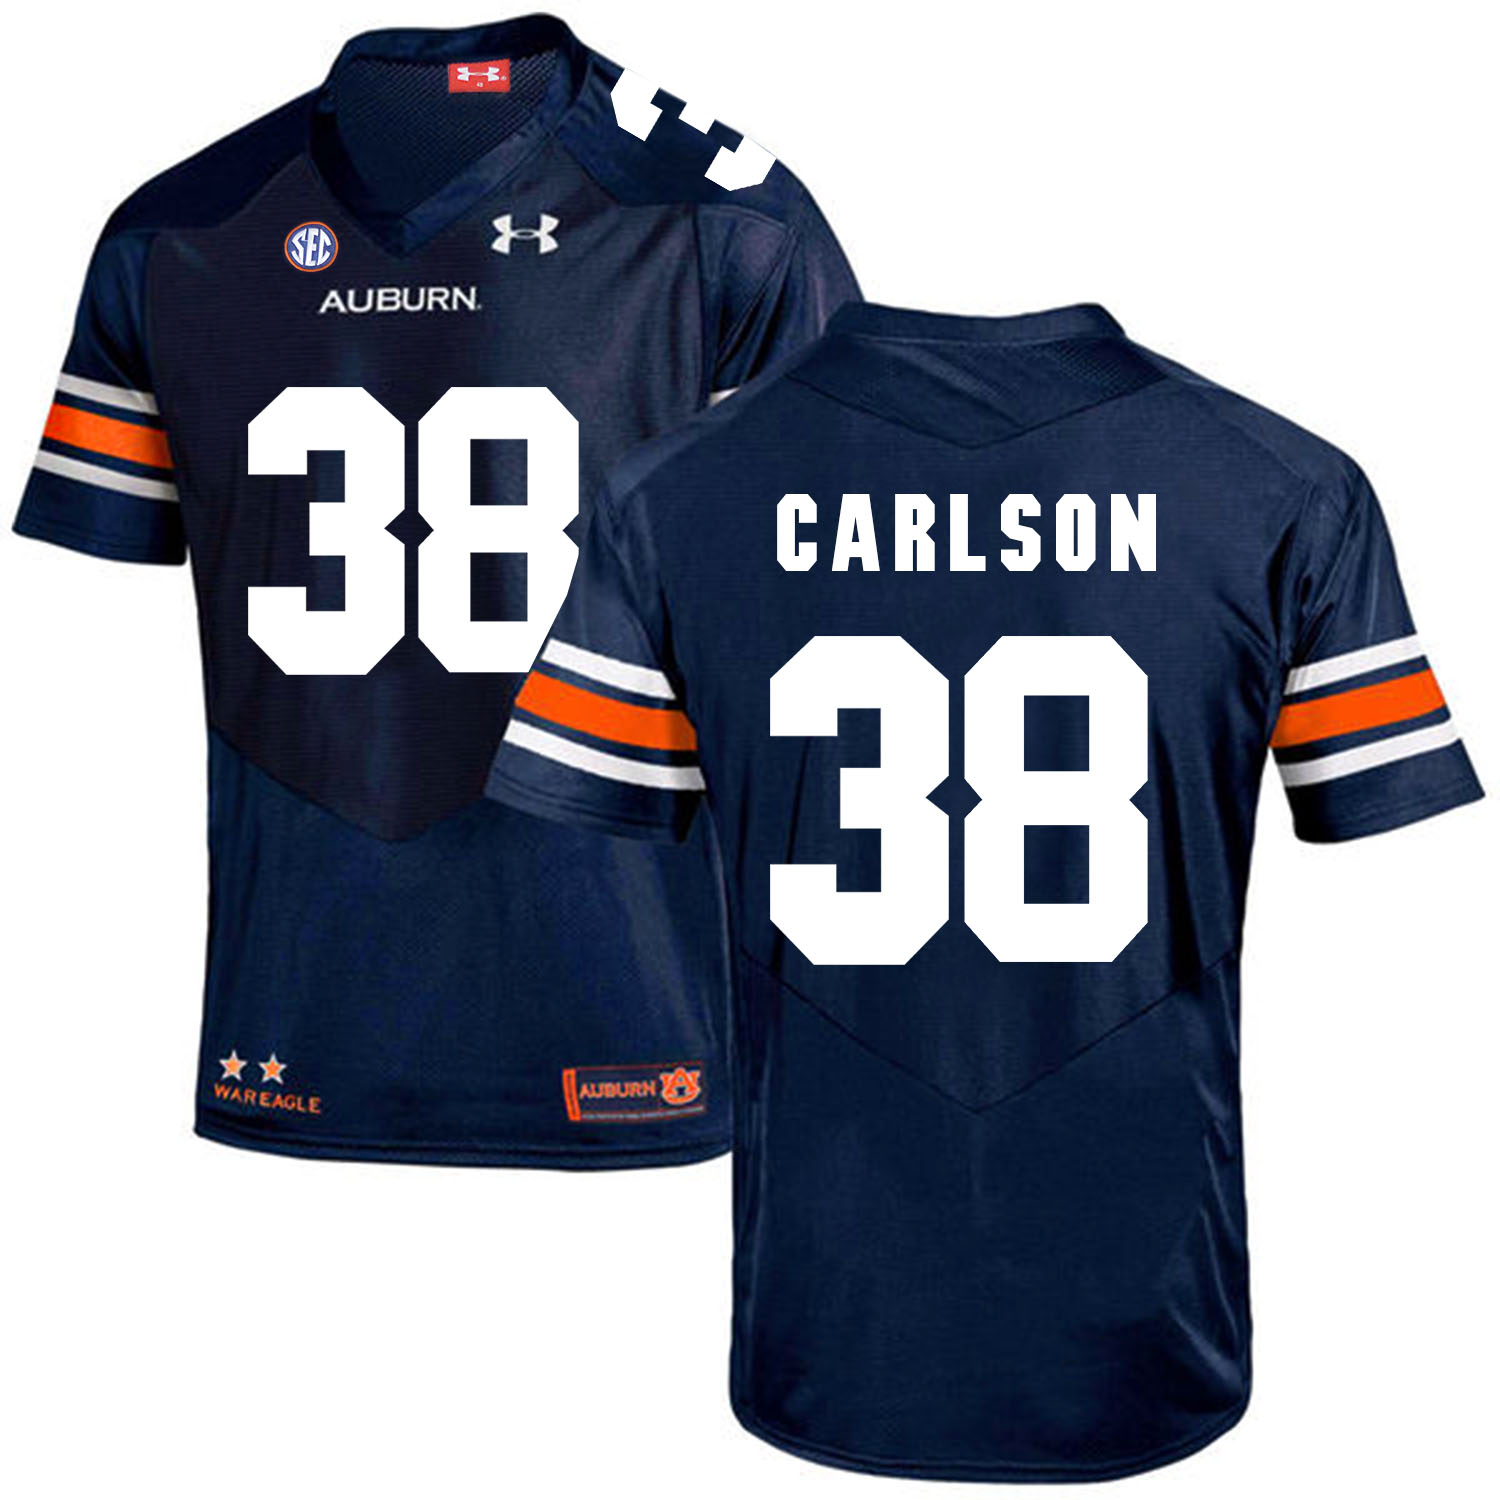 Auburn Tigers 38 Daniel Carlson Navy College Football Jersey